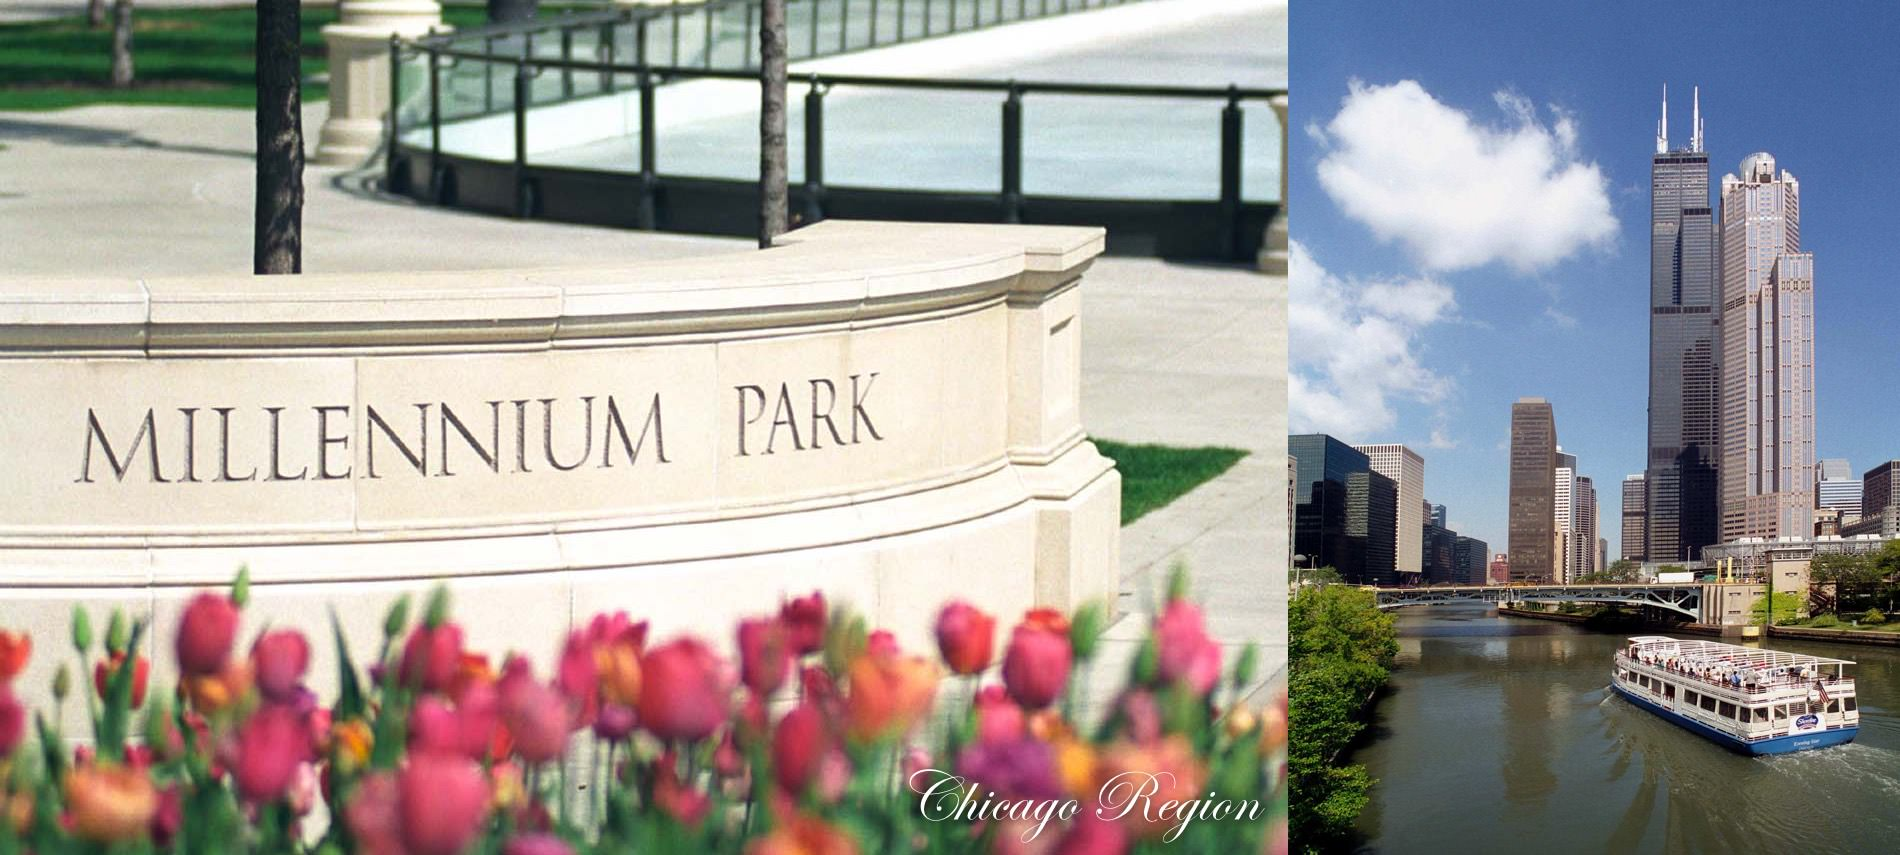 Cream brick wall with text Millennium Park engraved, tulips in front and text Chicago Region, Ferry on river with skyscrapers.